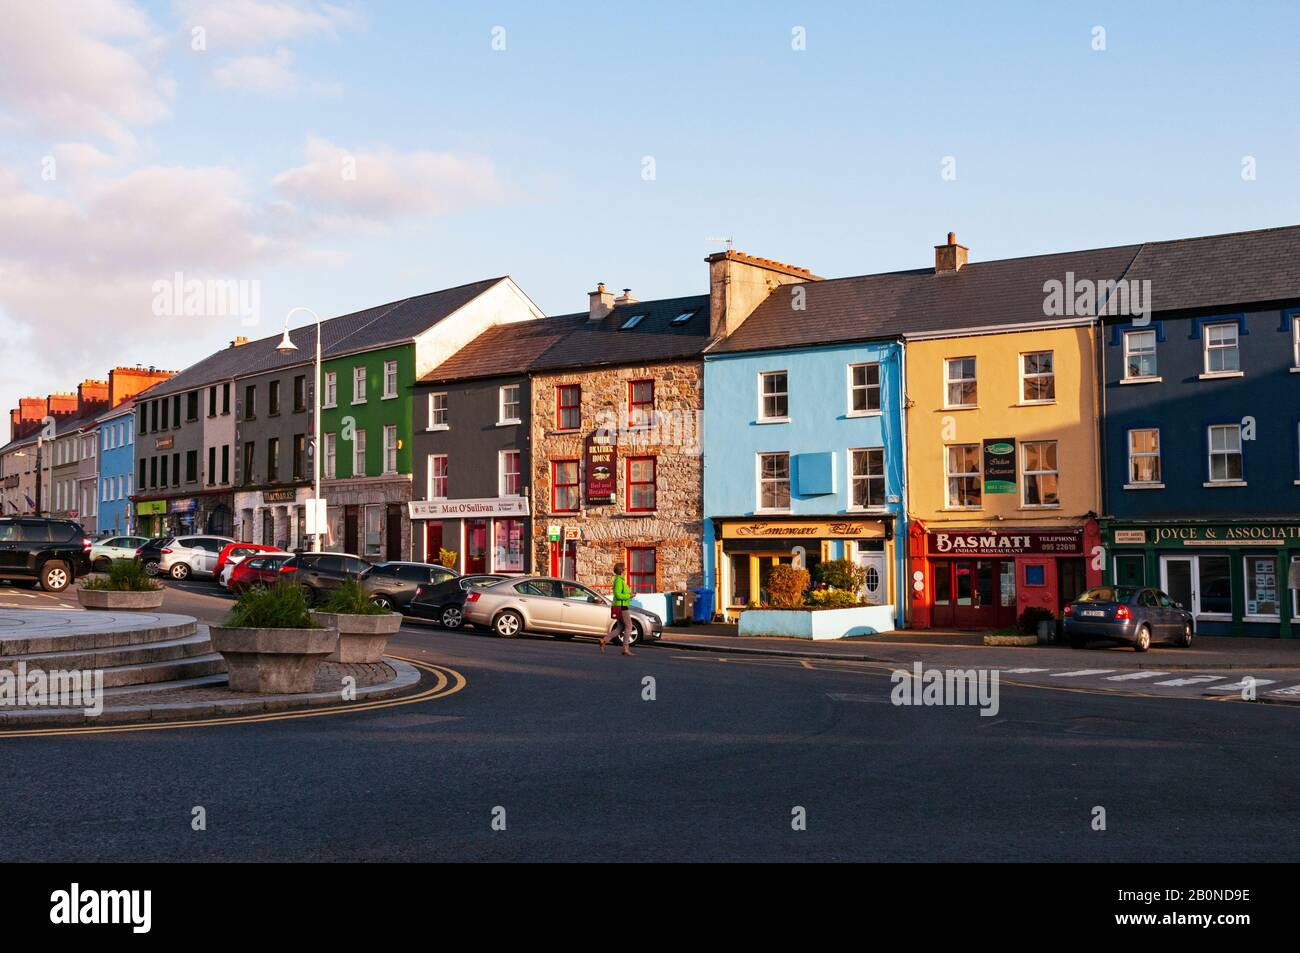 Weighed | A weigh station in the heart of Clifden, Co. Galwa